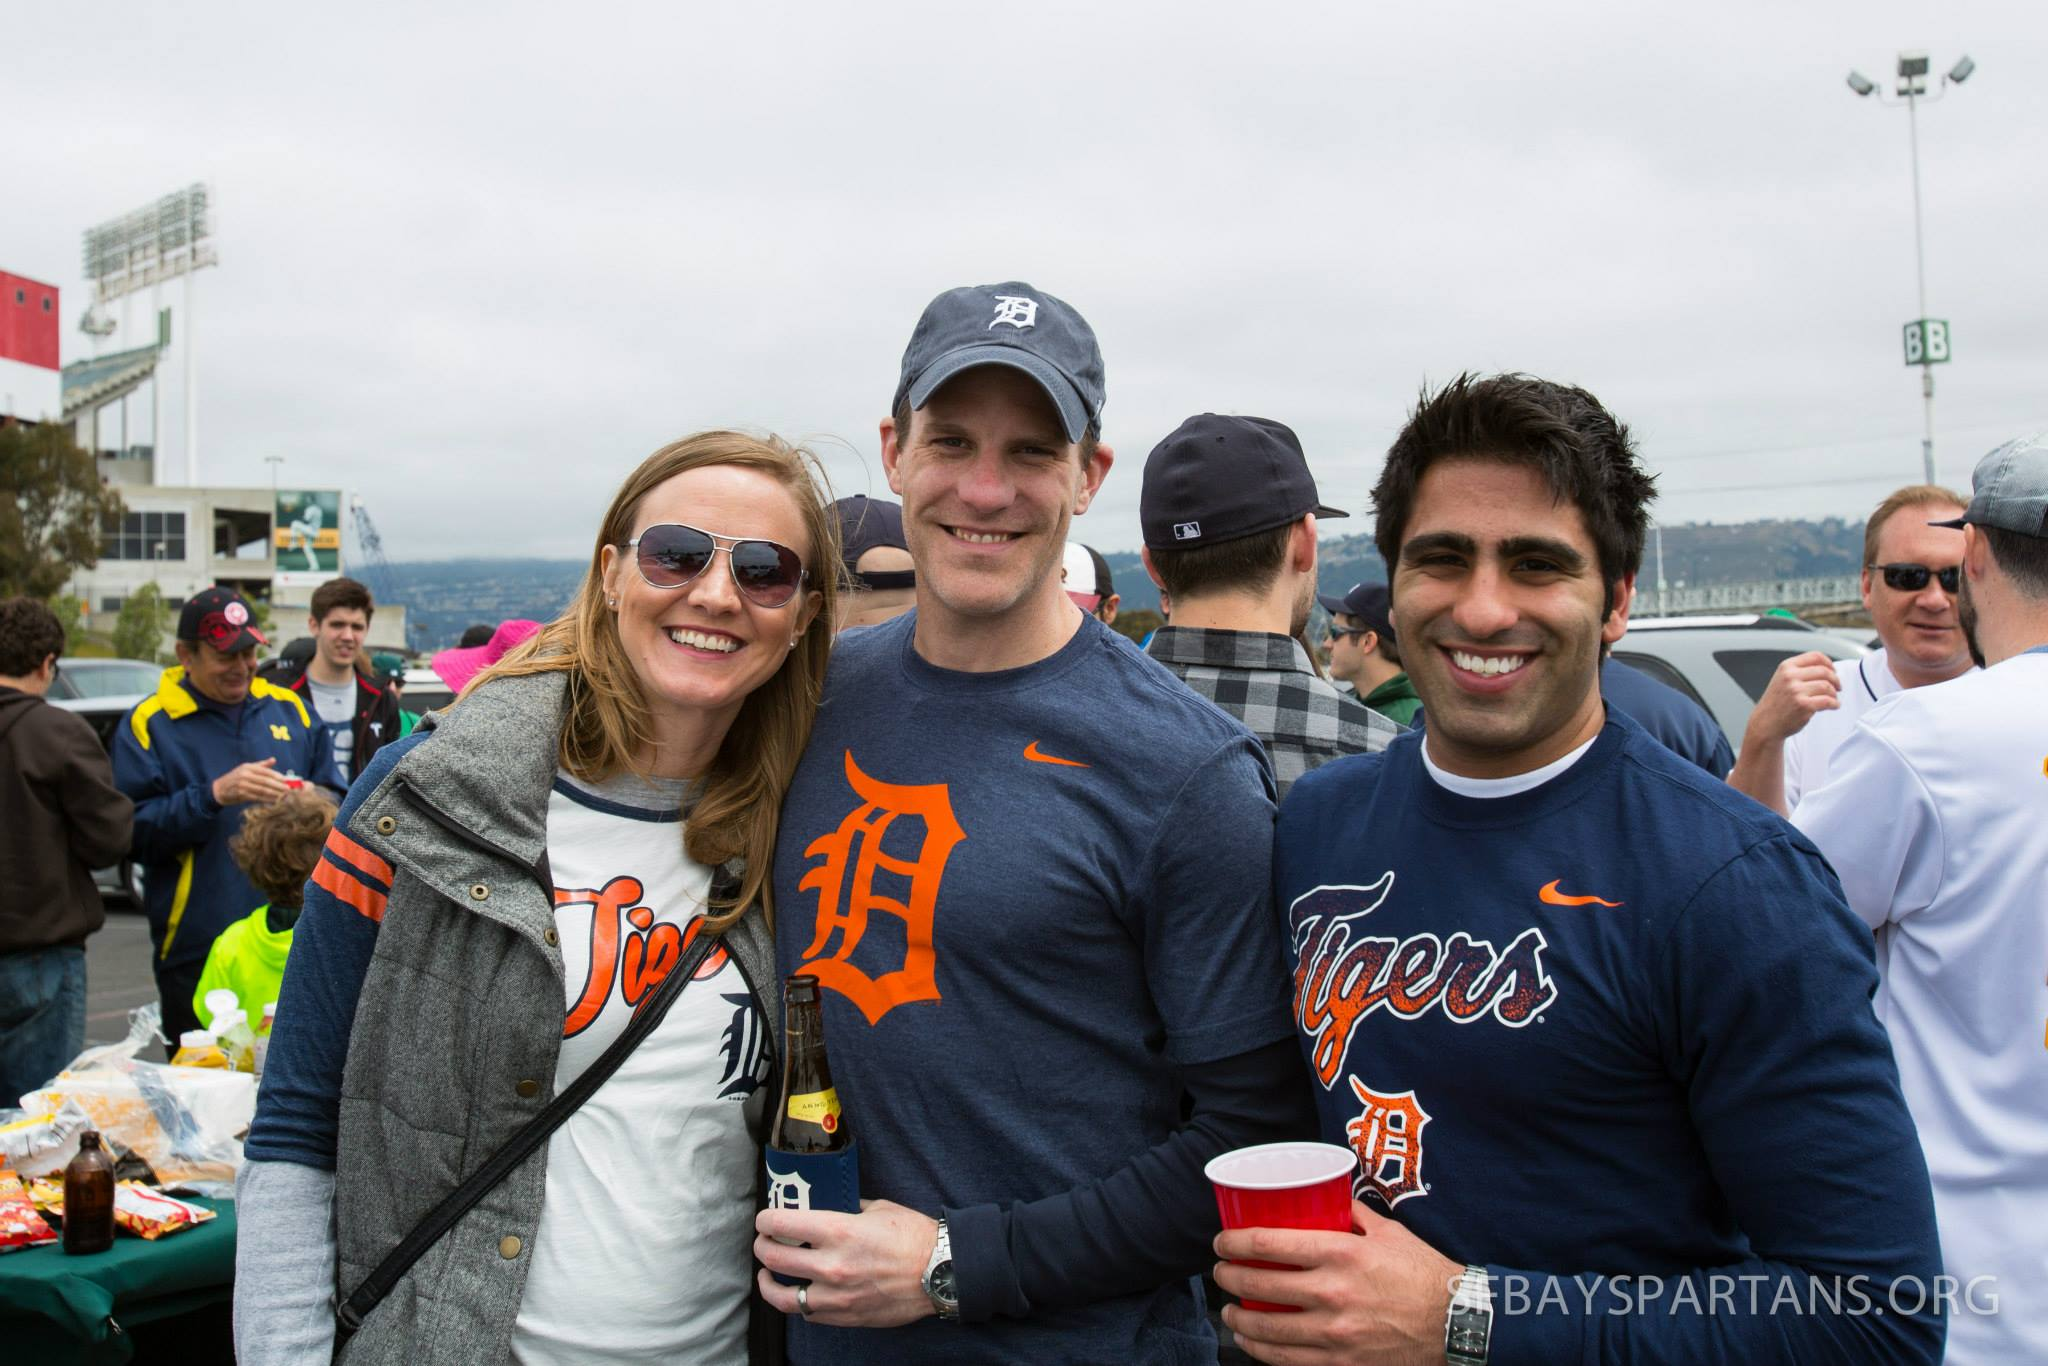 Tigers vs As Game and Tailgate